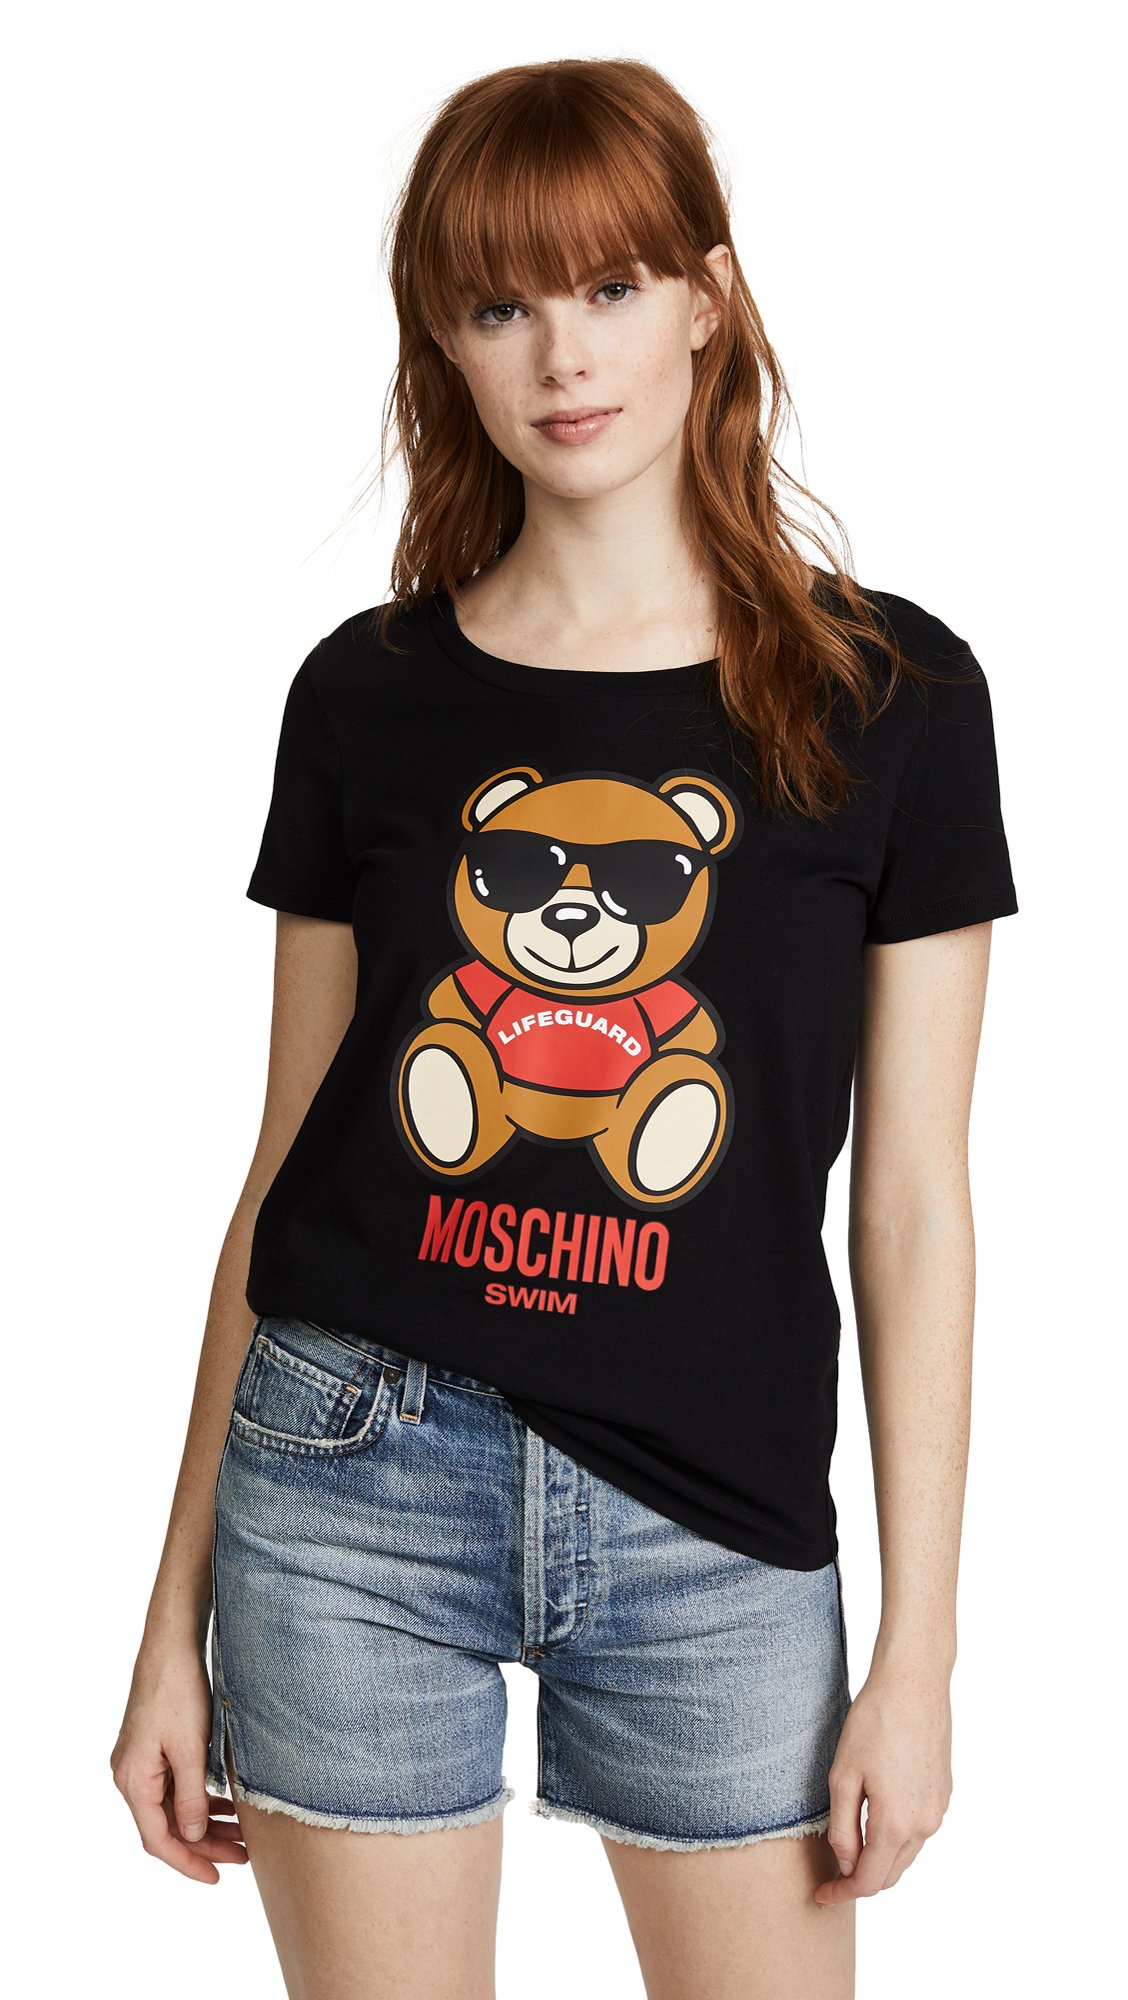 Moschino Women's Bear With Glasses Graphic Tee, Black, X-Small by MOSCHINO